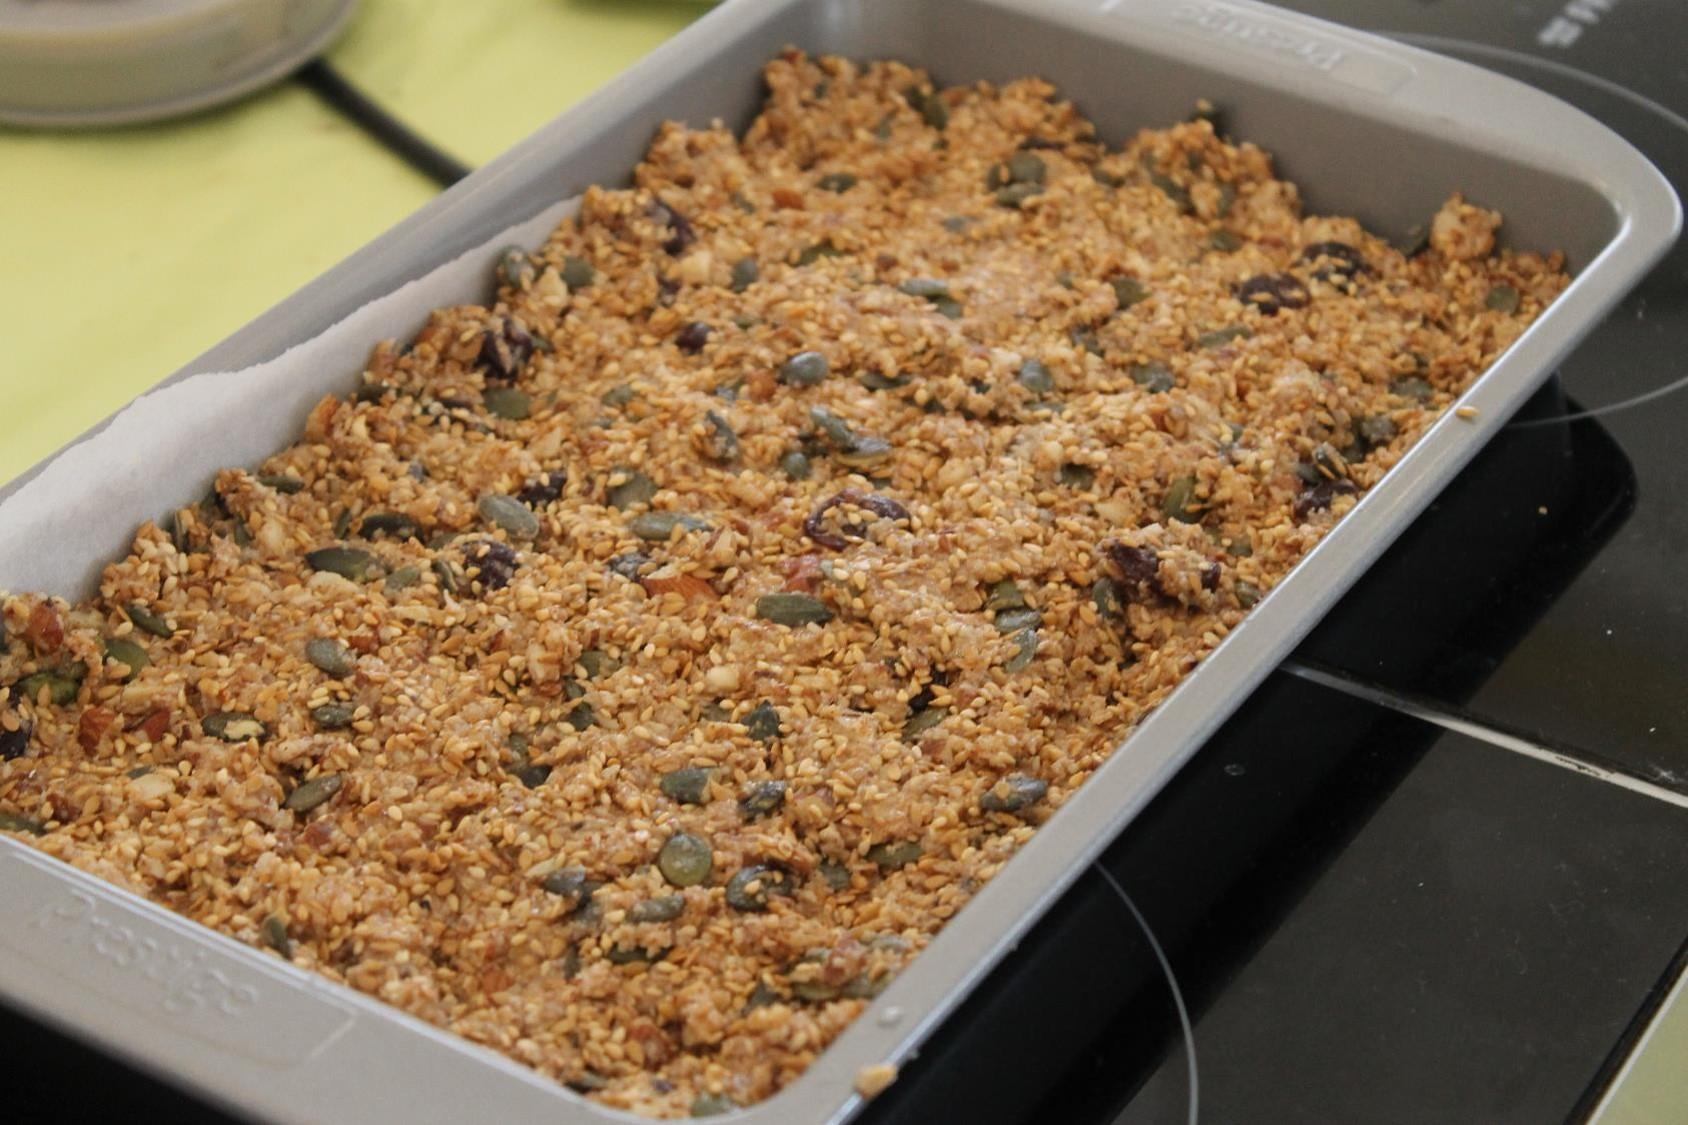 granola bar before oven